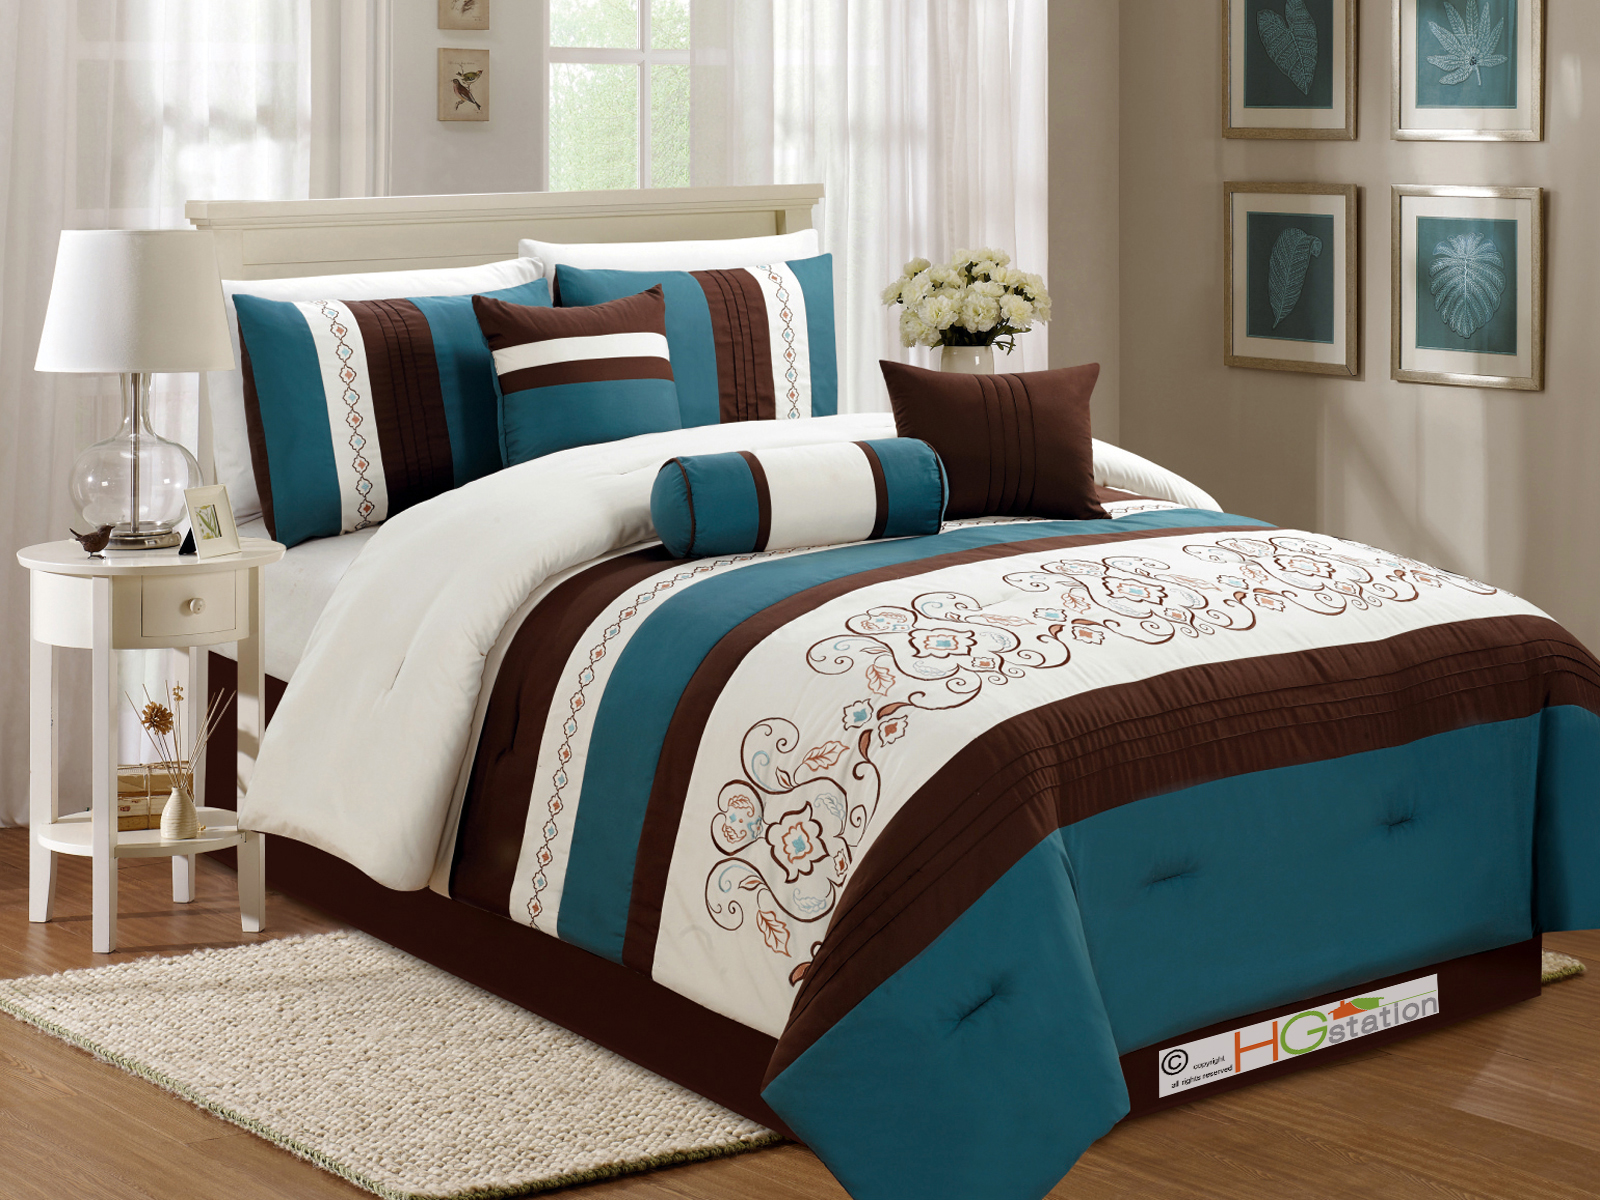 7 pc floral scroll damask embroidery piping comforter set Teal bedding sets